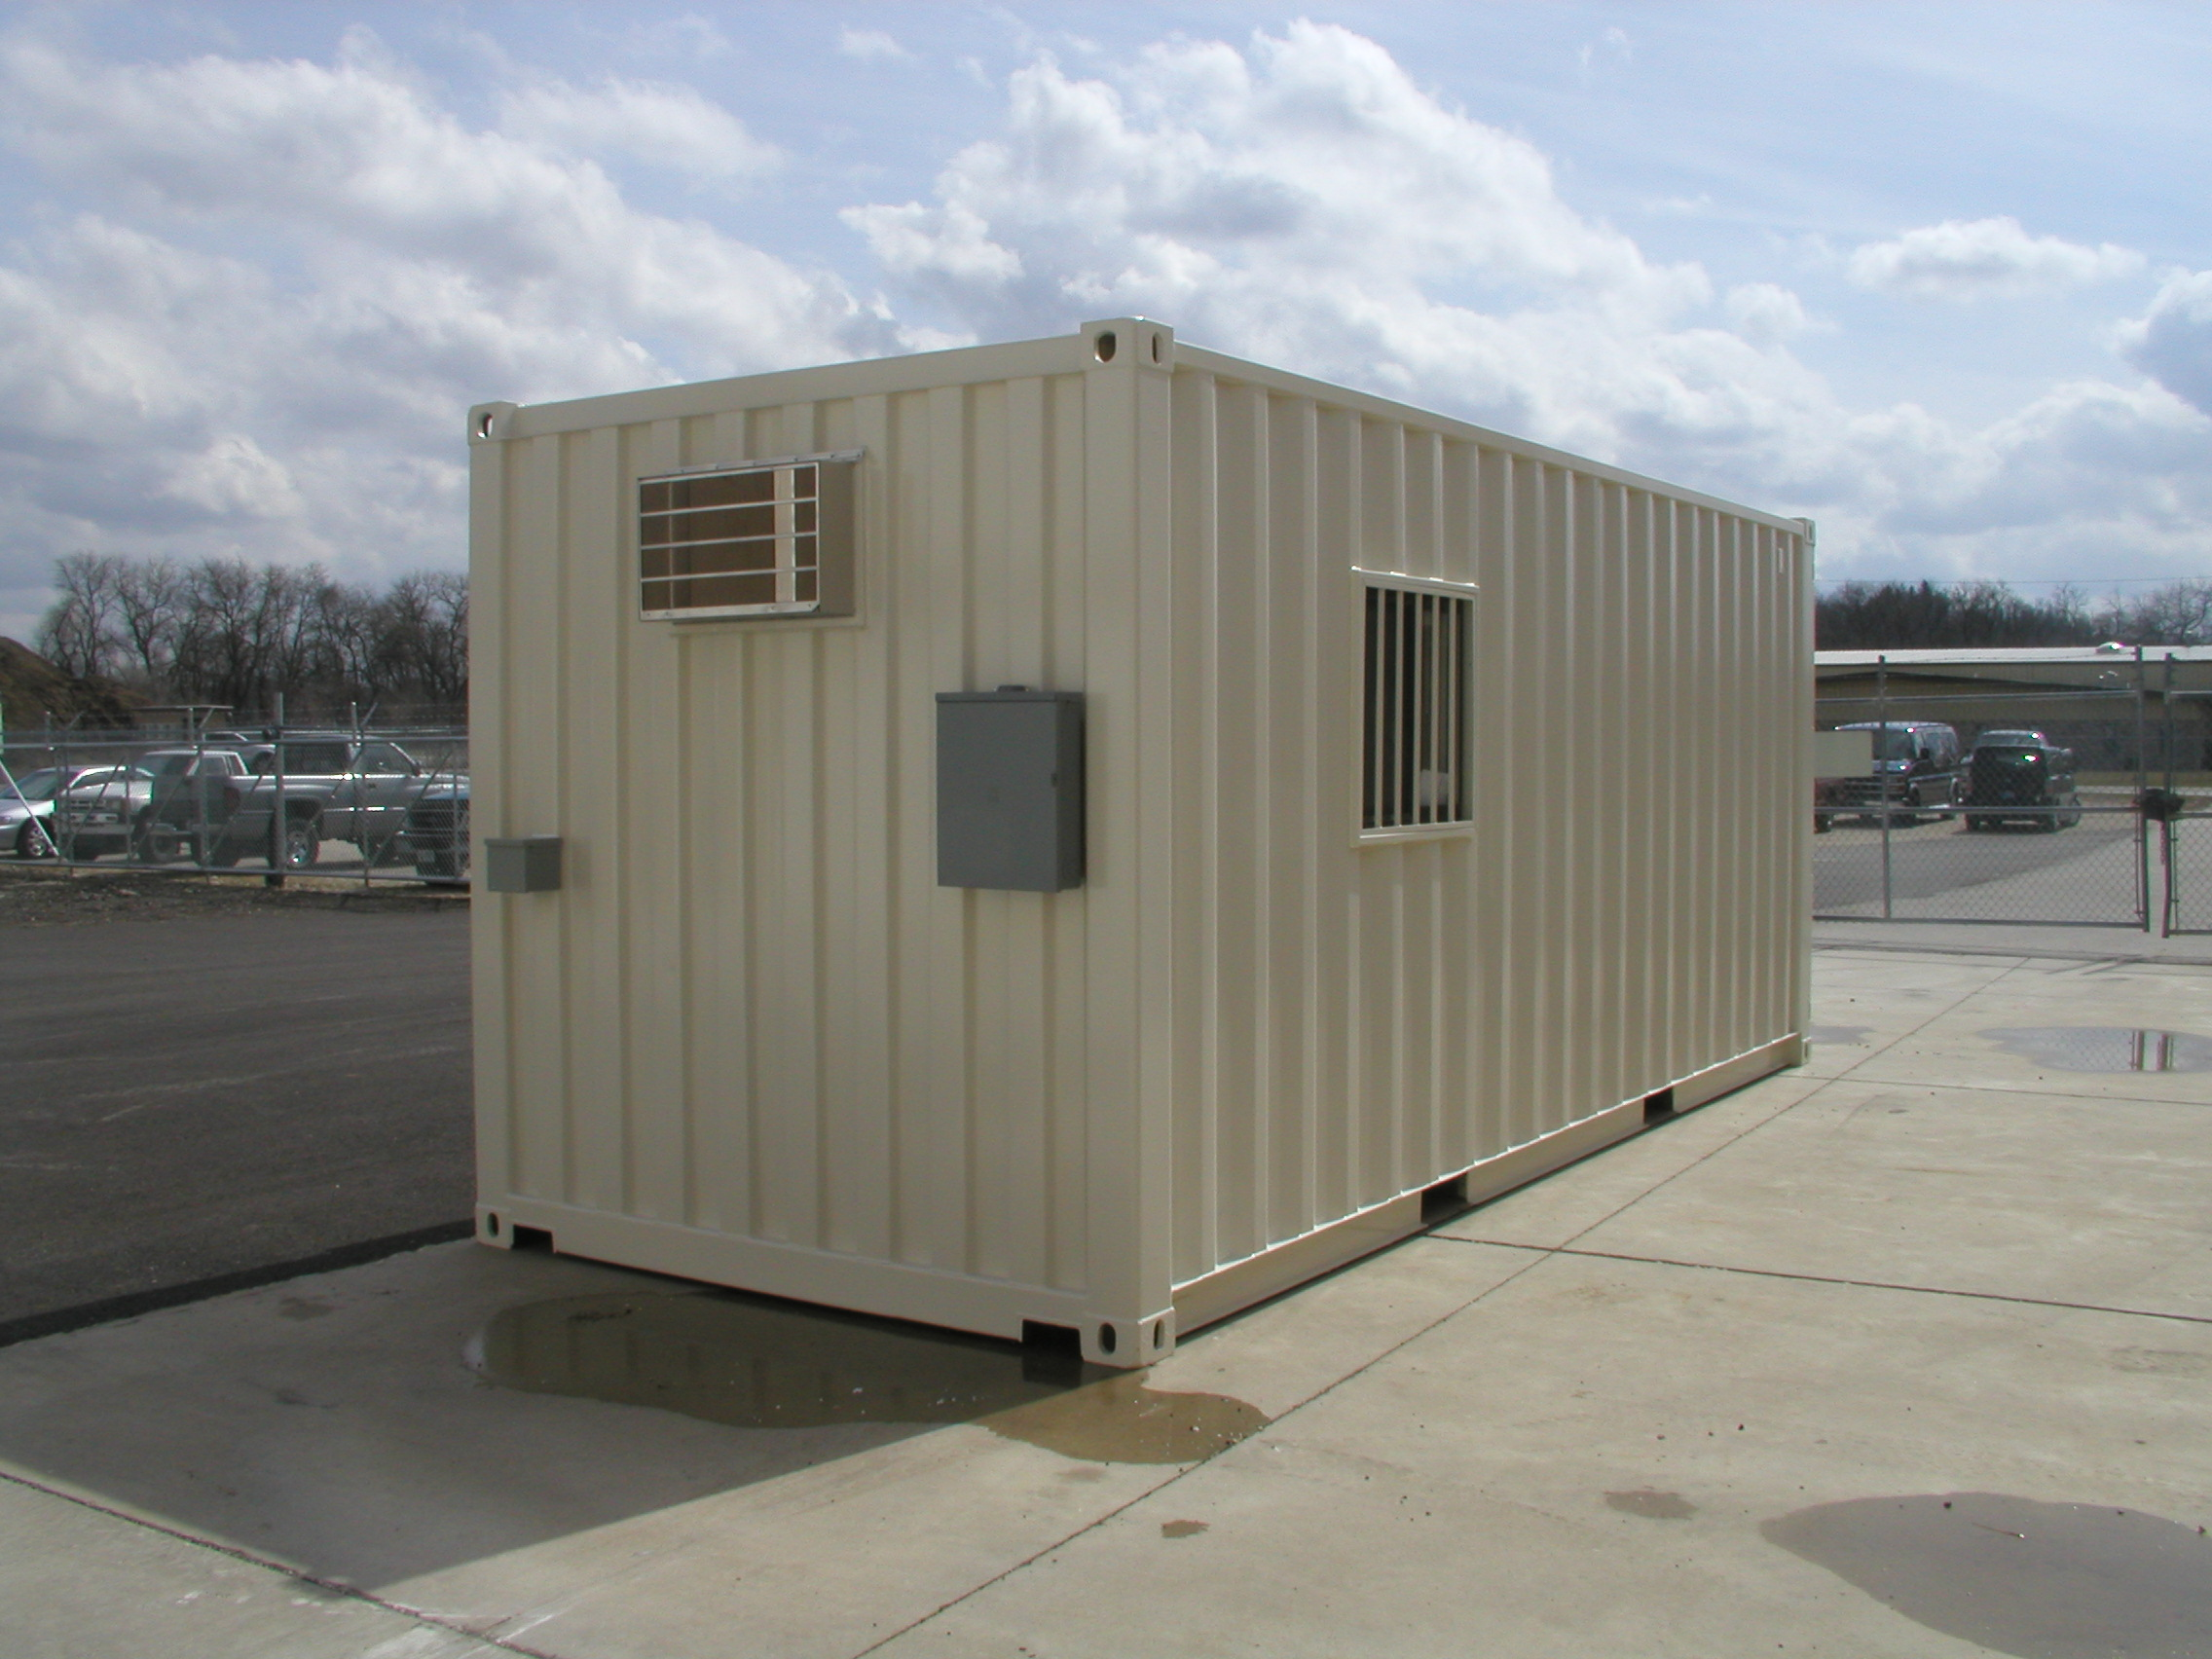 QUESTIONS ABOUT A MODULAR BUILDING? ASK OUR EXPERTS.